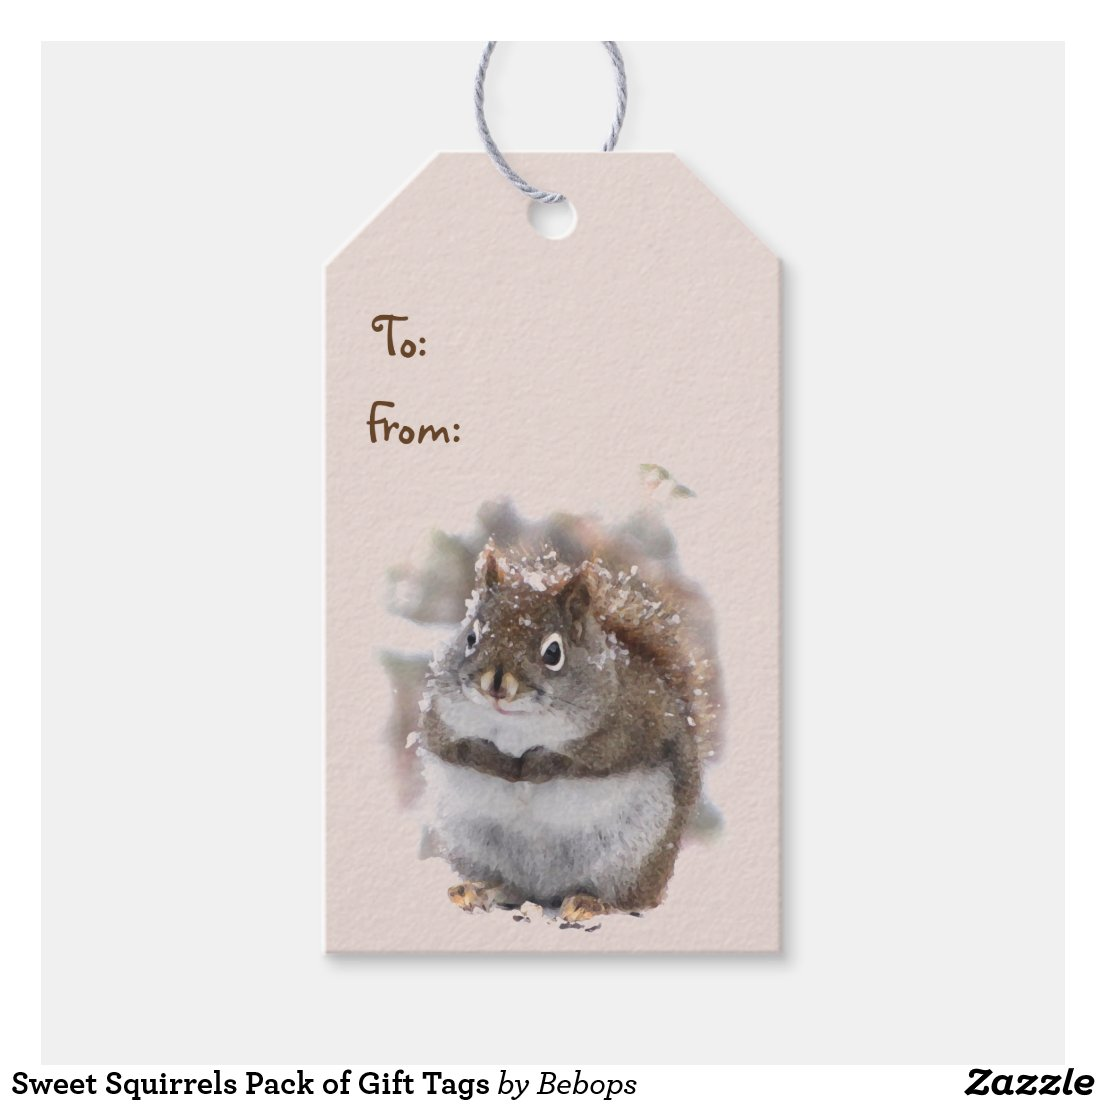 Sweet Squirrels Pack of Gift Tags